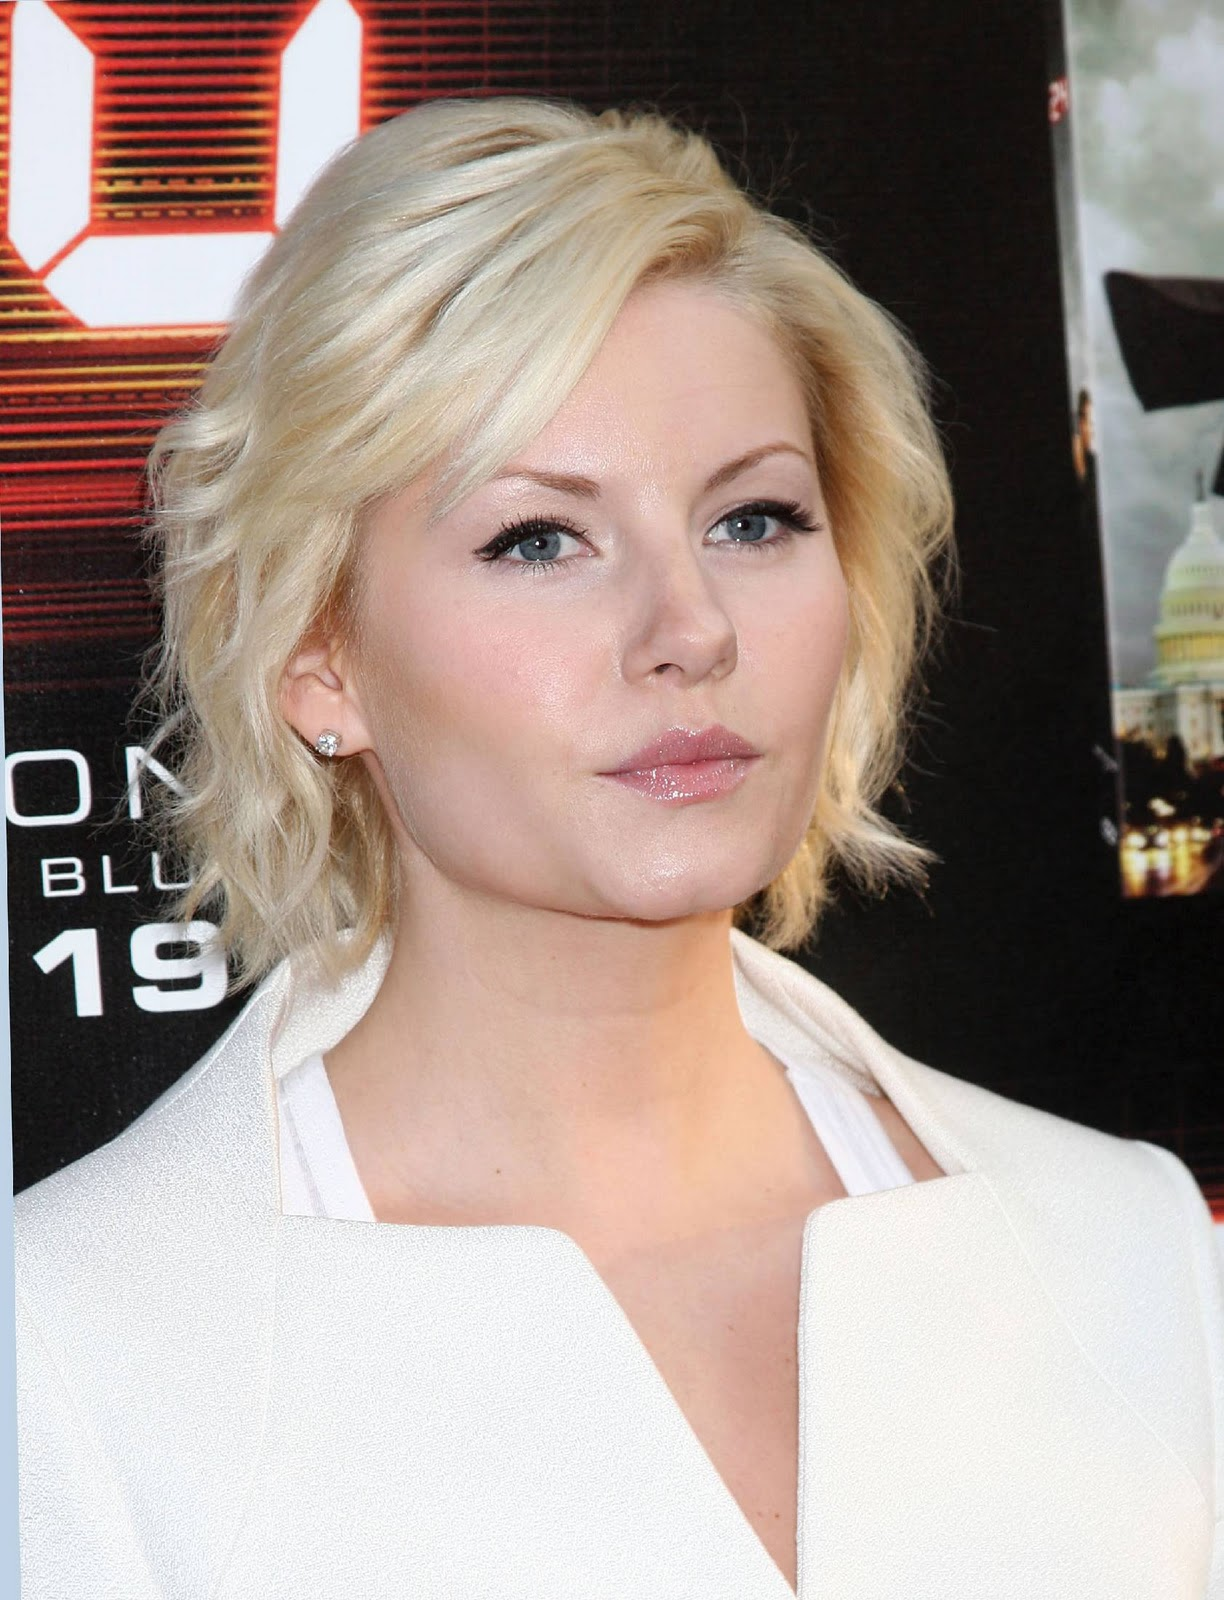 Elisha Cuthbert Latest Photos: Angled Bob Hairstyle